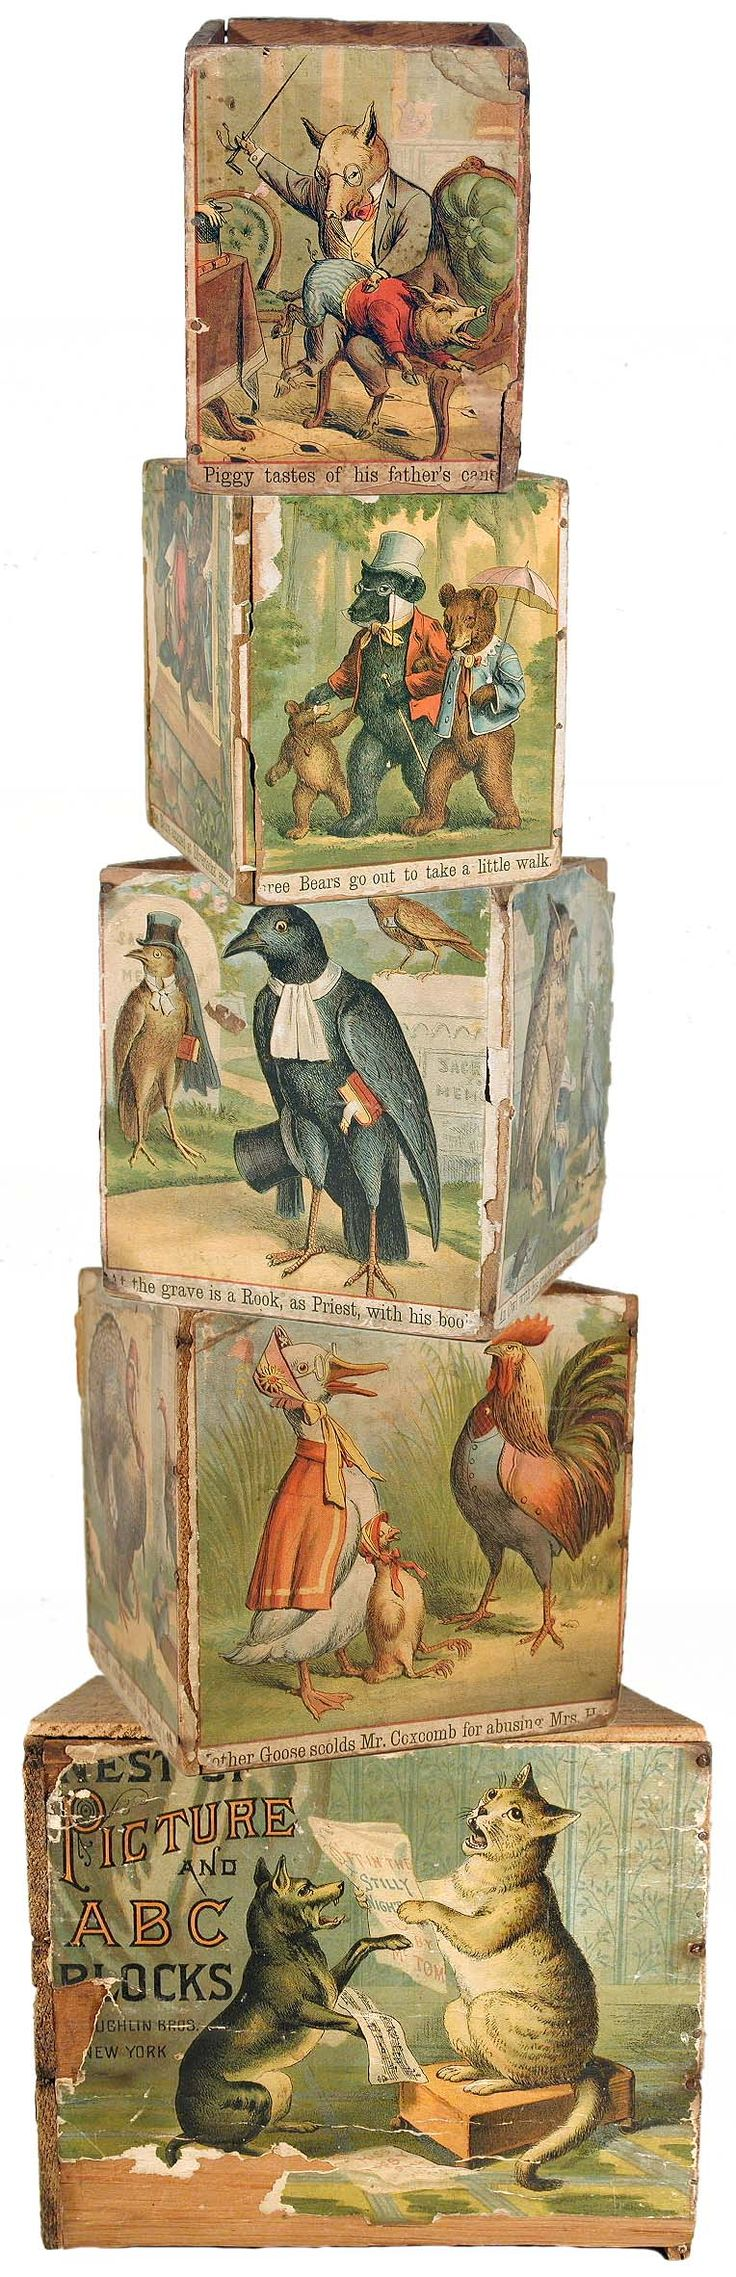 c.1890 McLoughlin, Picture and ABC Nesting Blocks of Animal Proverbs